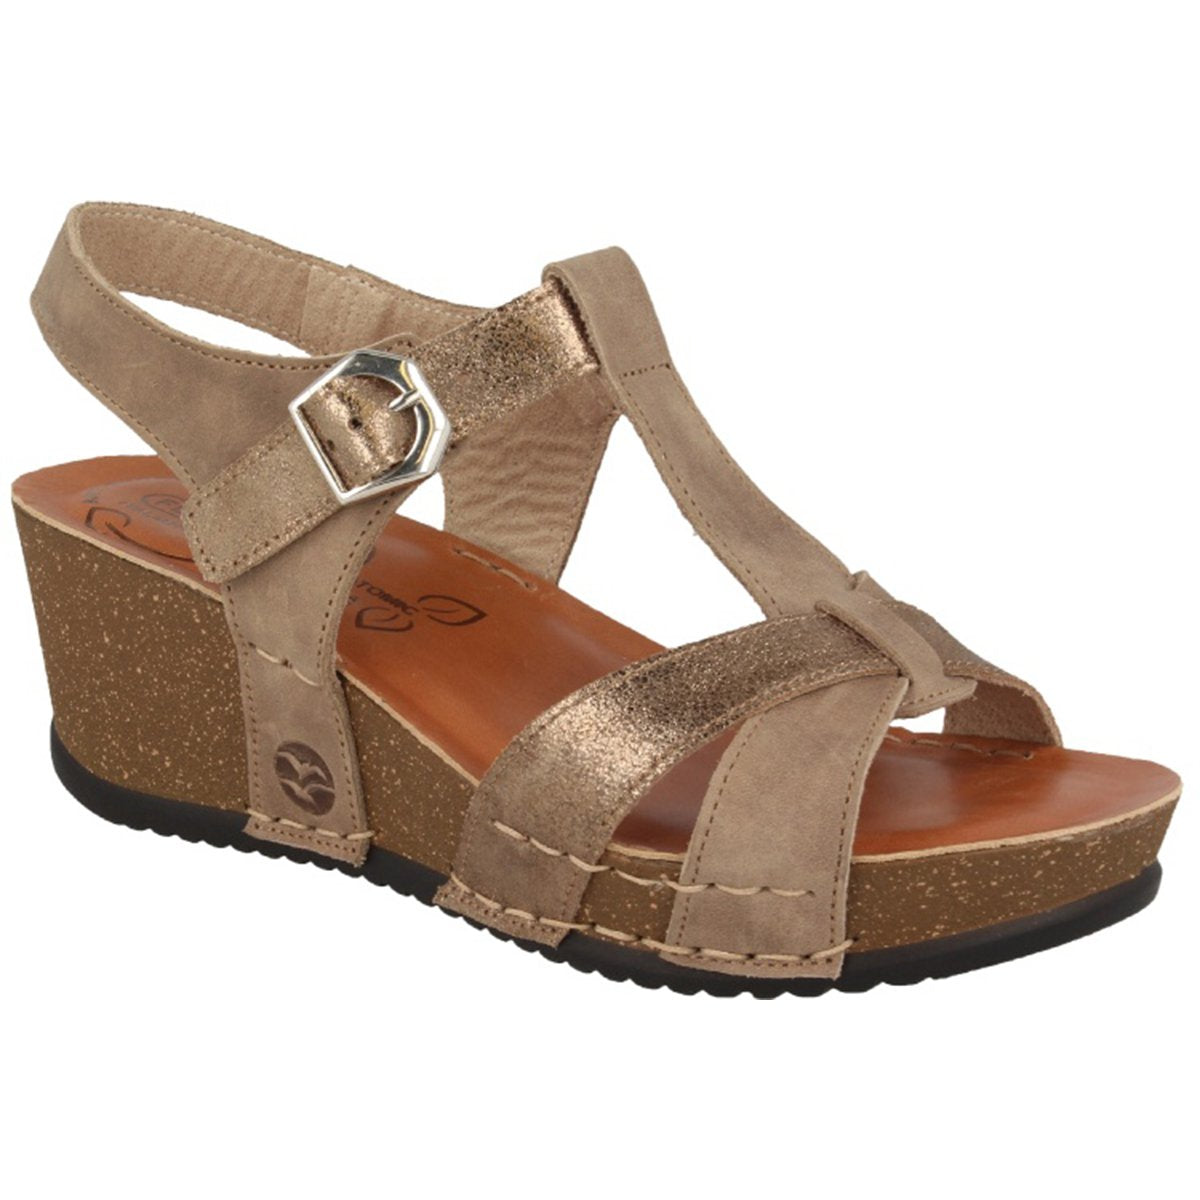 See photos Leather Woman Sandal Taupe (33216PG)